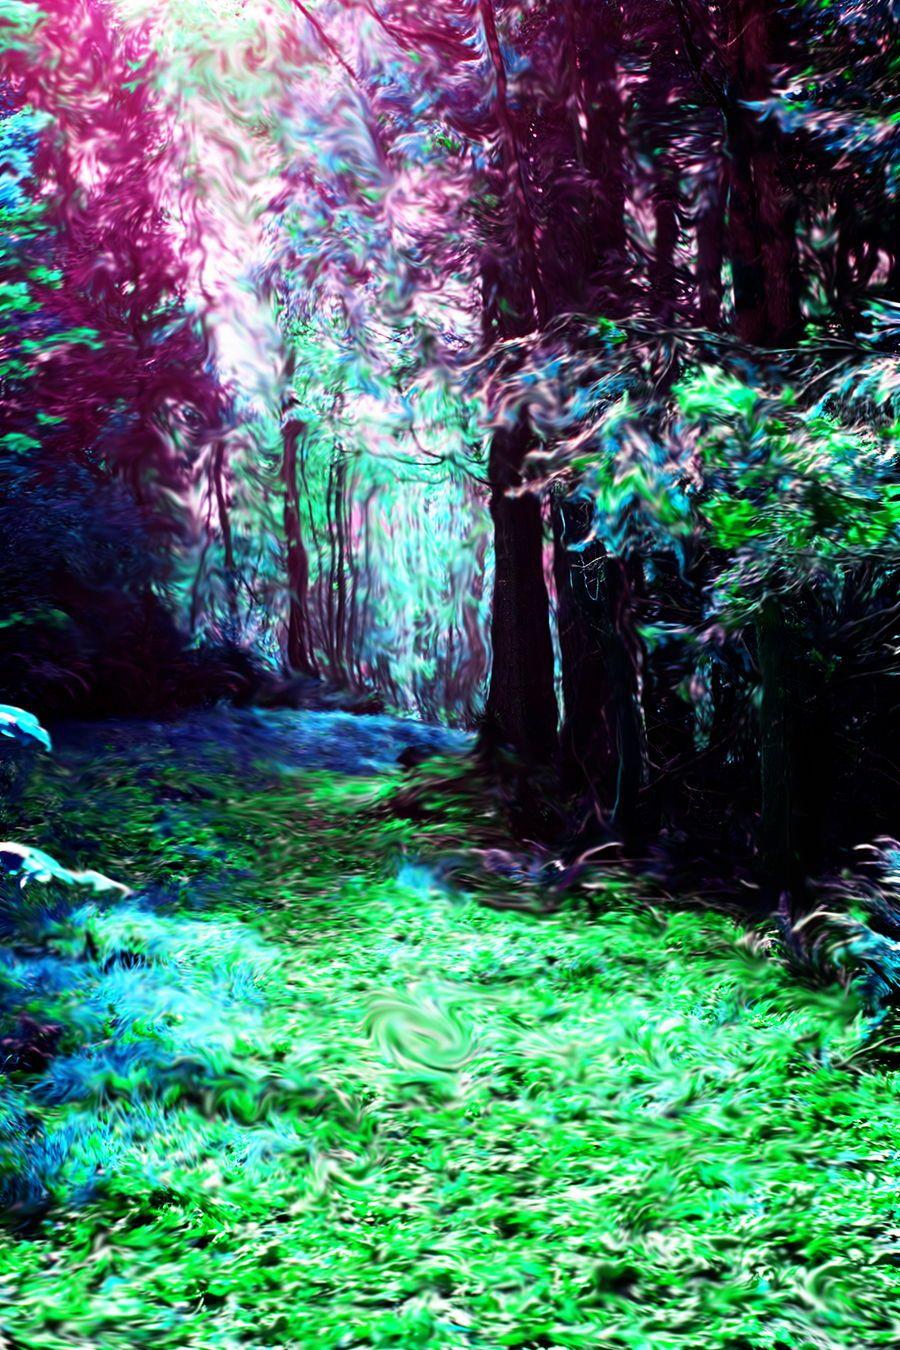 Enter The Forest A Trippy Psychedelic Art Print Of The Forest Created In Photoshop By Lisa Kathryn Studio Trippy Photos Trippy Painting Aesthetic Painting